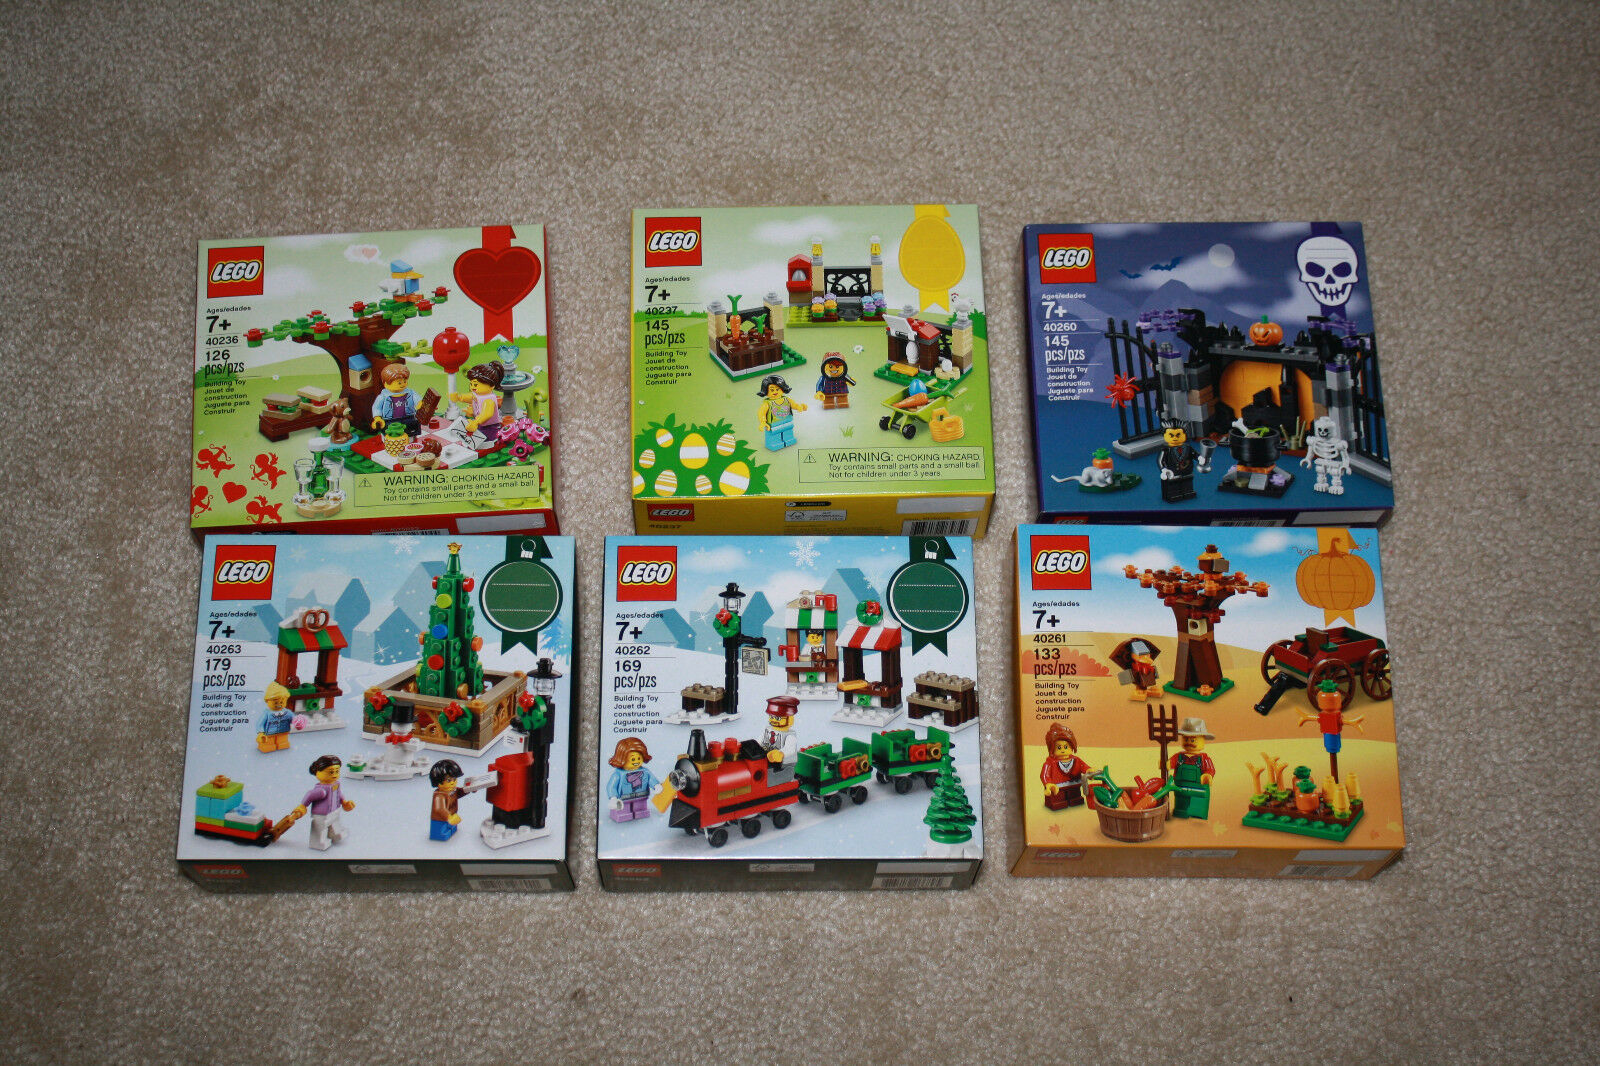 Lego 2017 Seasonal Set Lot 40236 40237 40260 40261 40262 40263 - Free Shipping